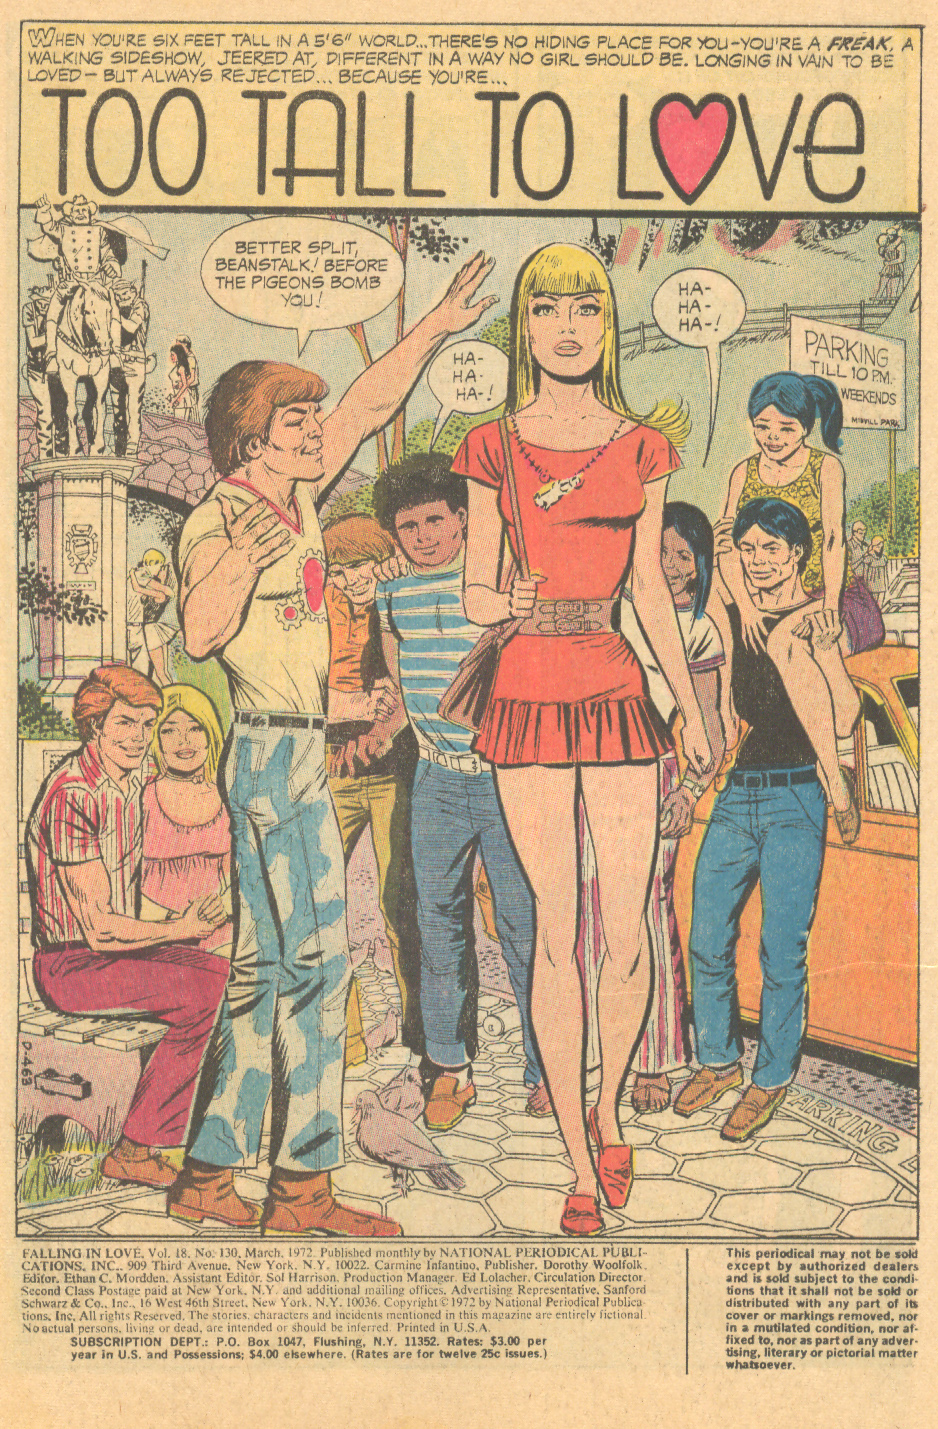 """Too Tall to Love"" Falling in Love #130 (March 1972)"